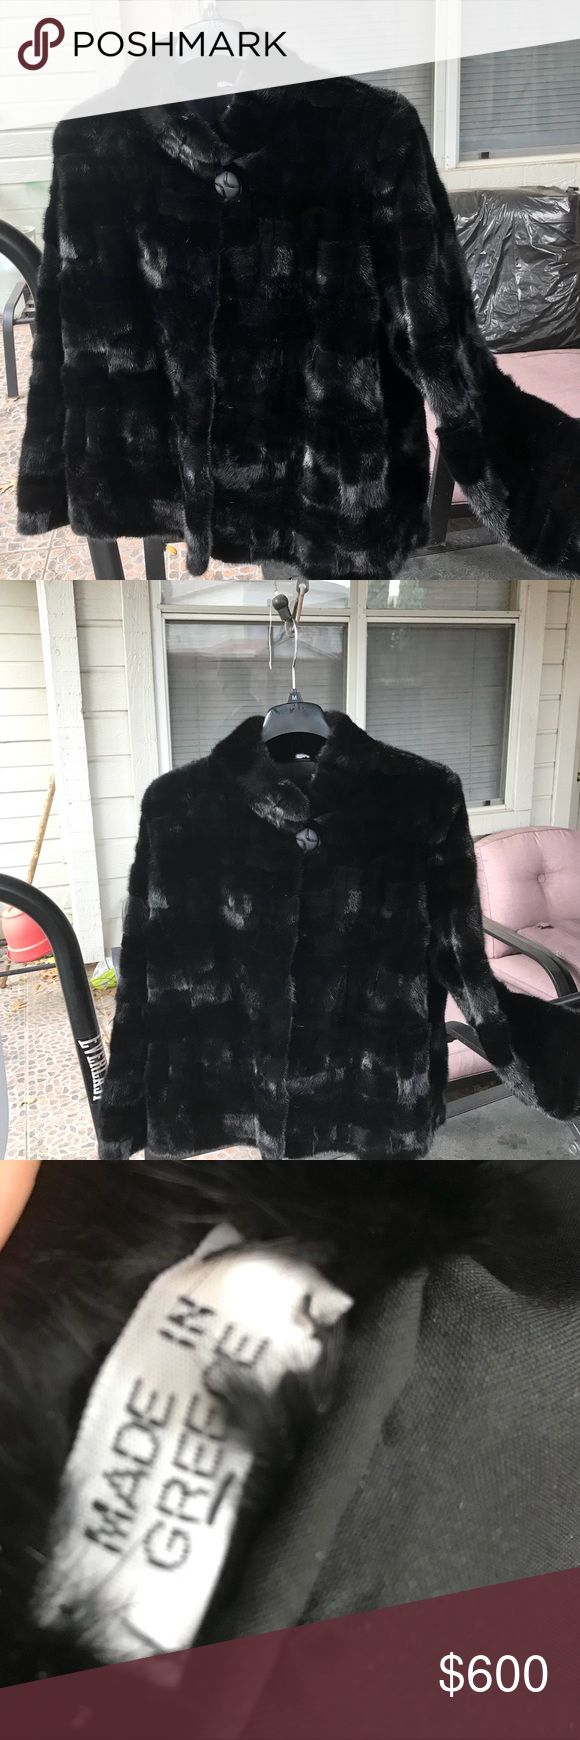 Women's Mink Jink Made In Greece Brand New ! Women's Mink Jacket Made In Greece Brand New Bought In Lord&Taylor M-L( Price Negotiable ) Lord & Taylor Tops